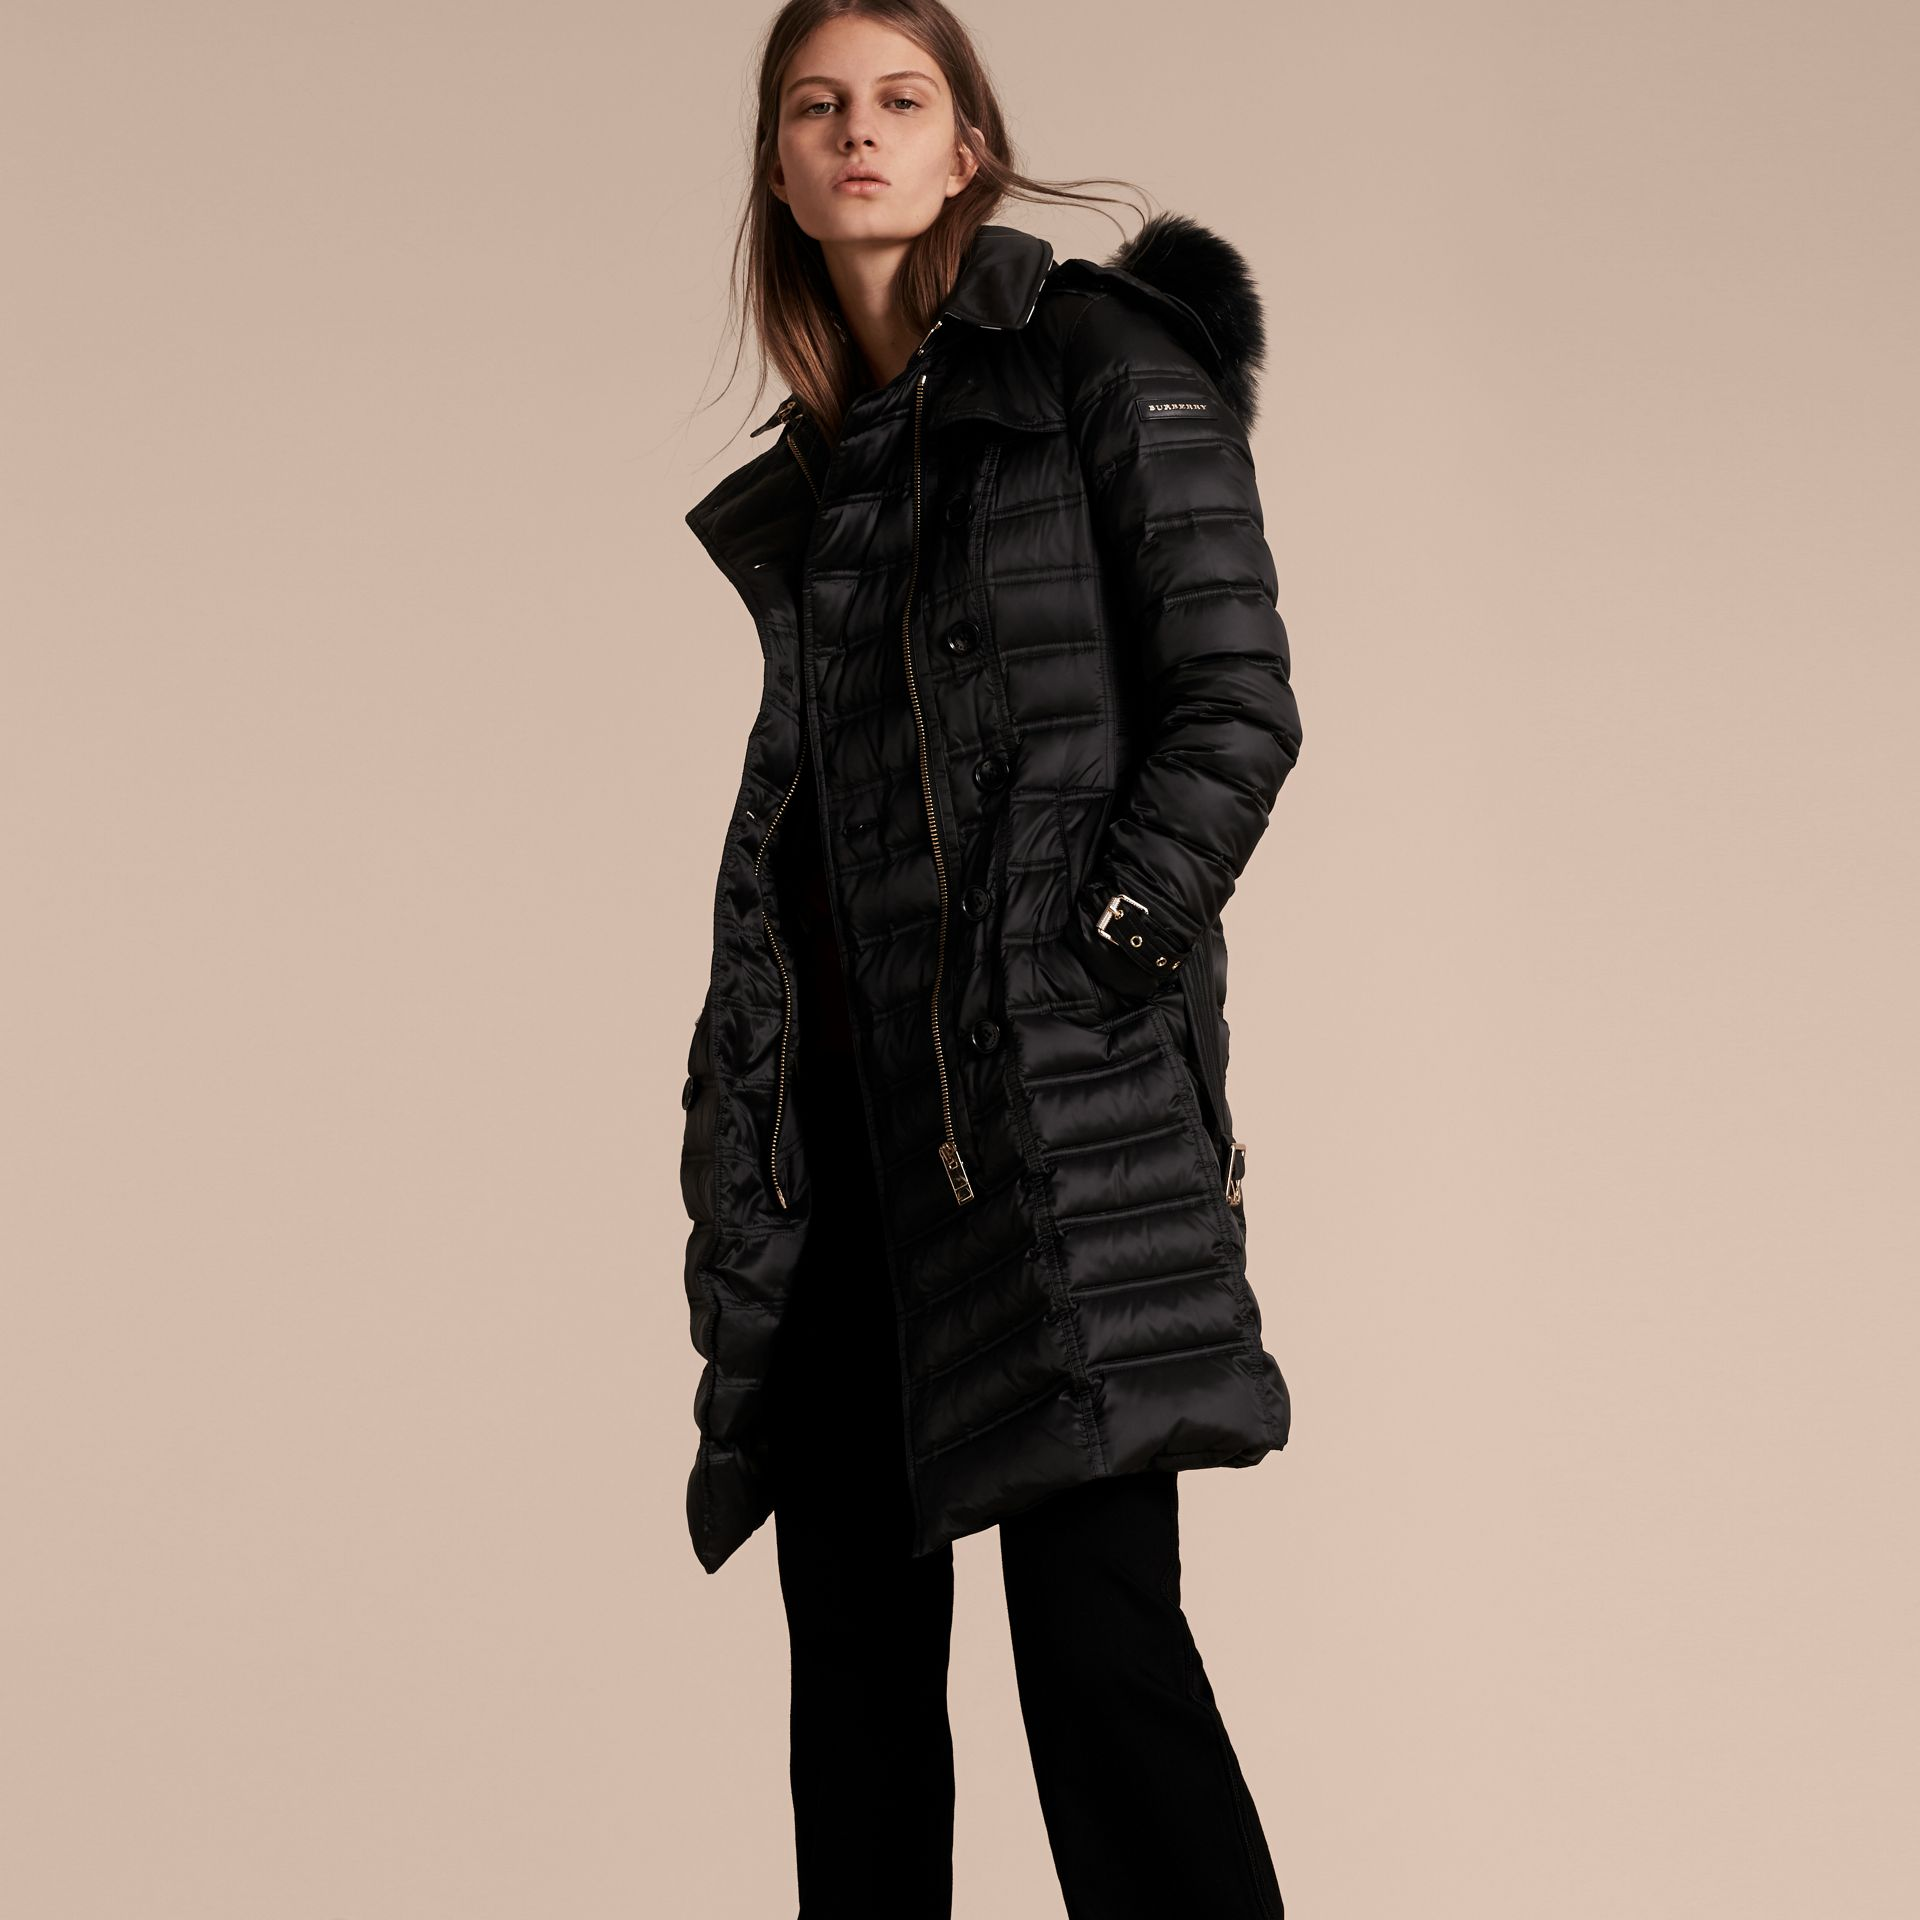 Black Down-Filled Puffer Coat with Fur Trim Black - gallery image 7